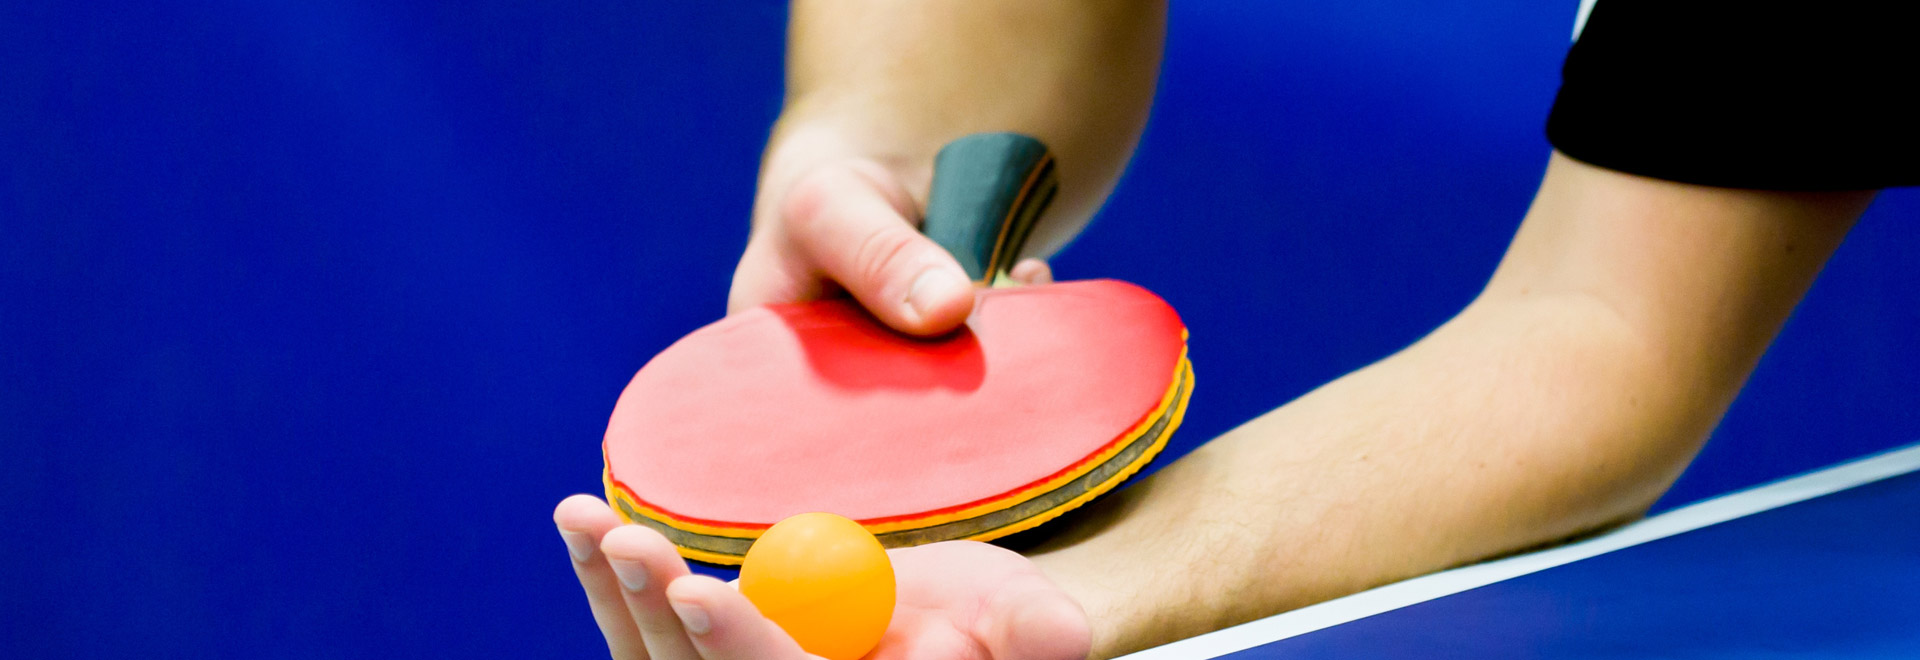 293961-table-tennis